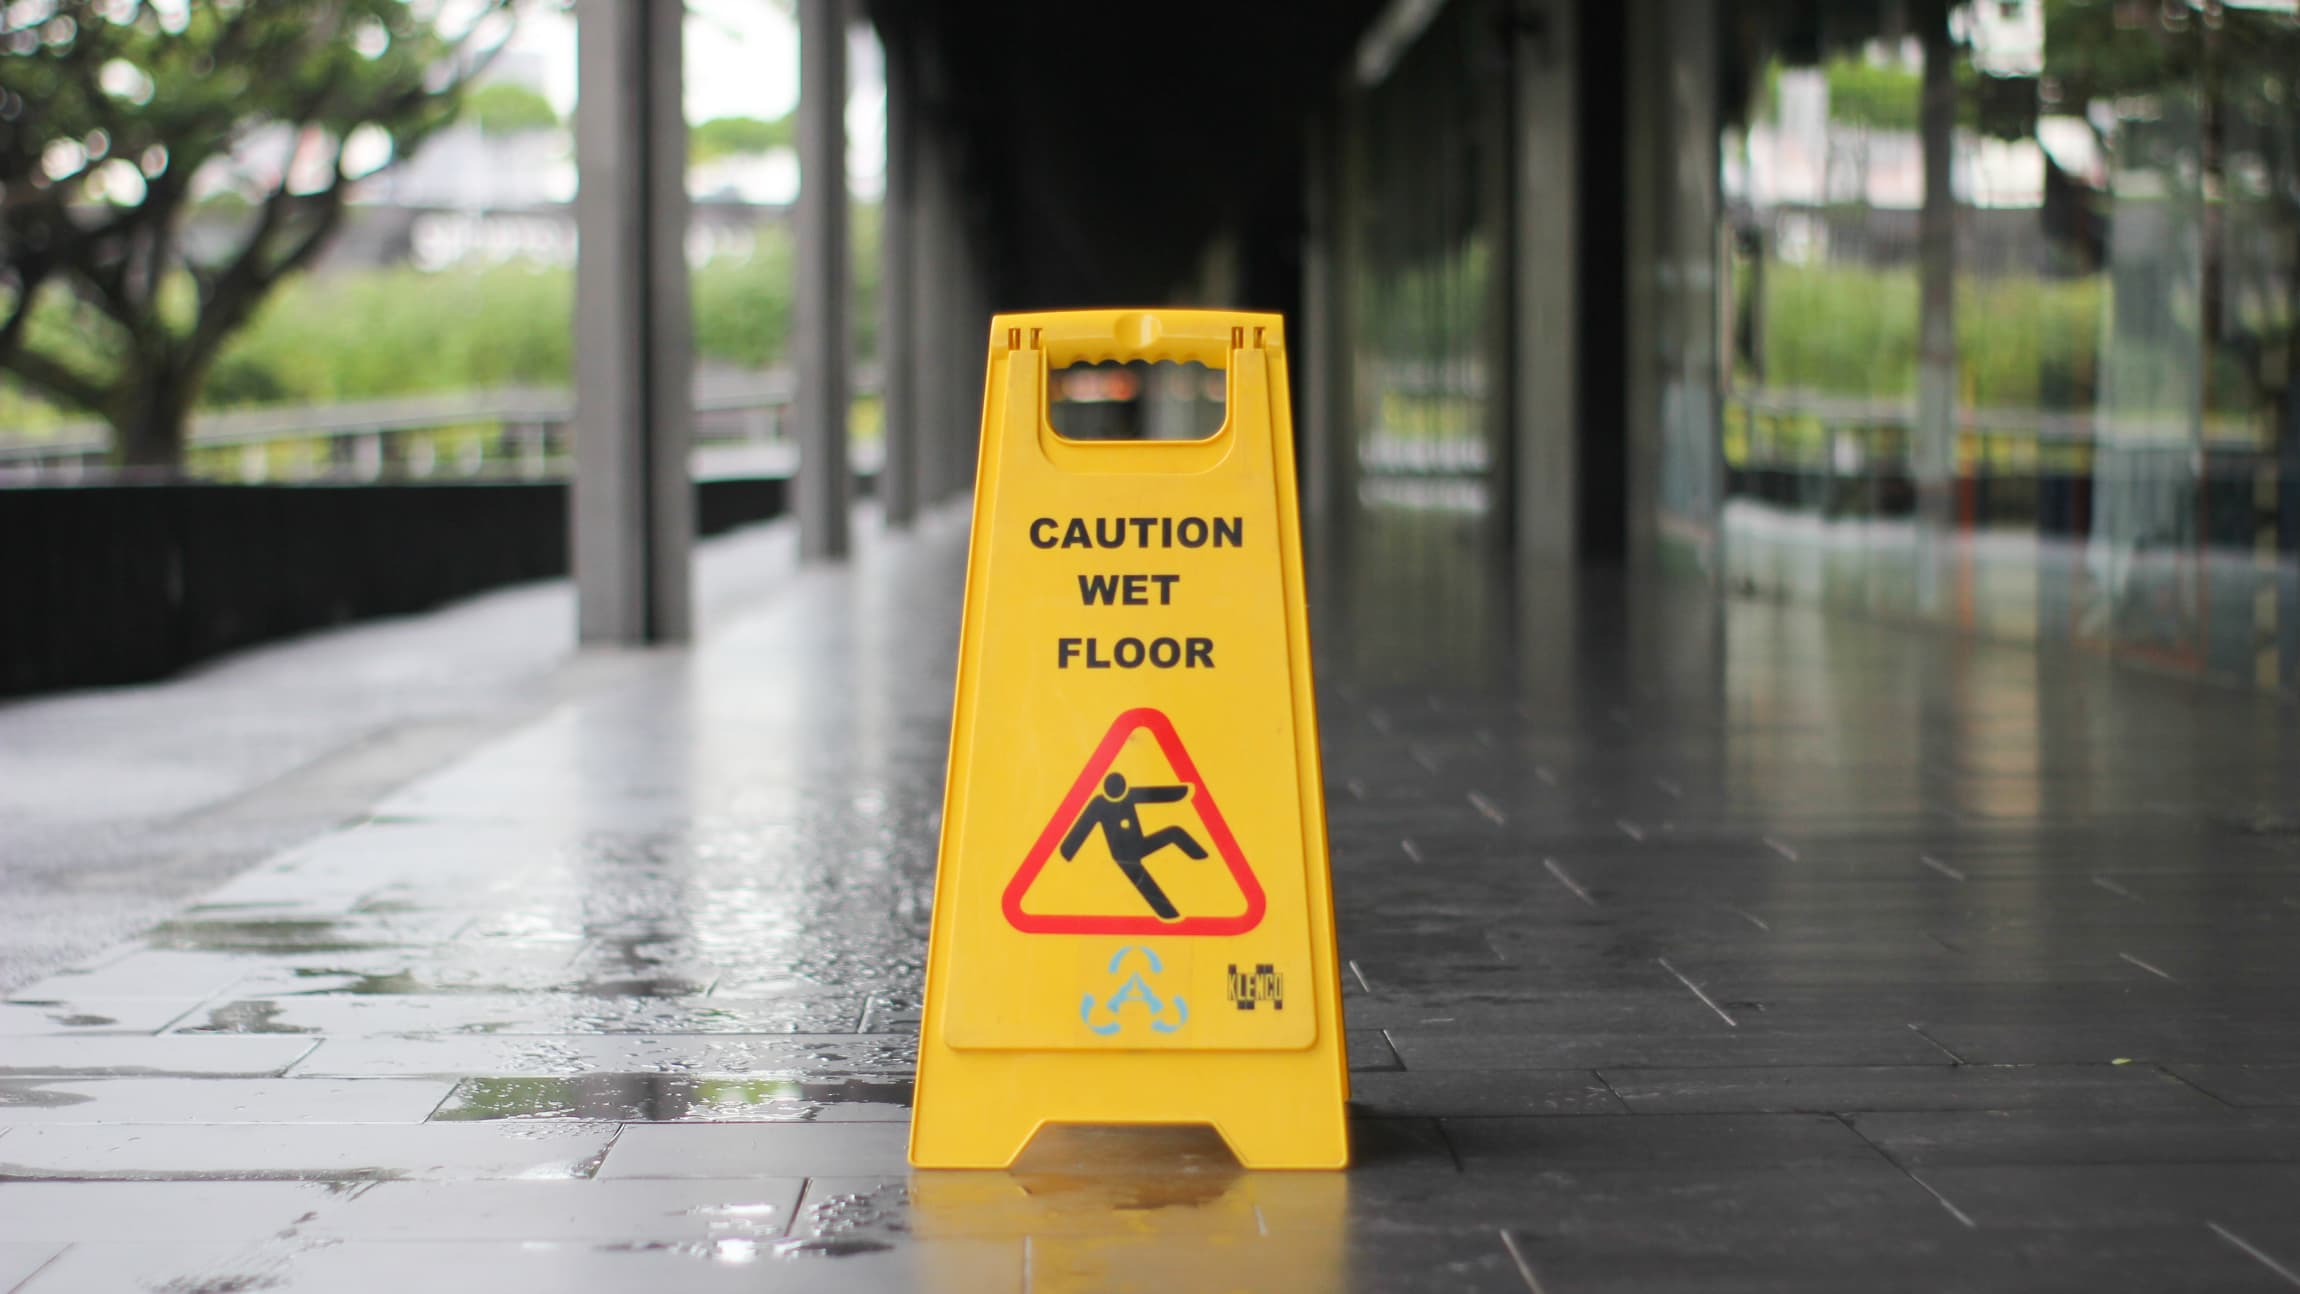 A yellow caution wet floor sign outside on a wet sidewalk.